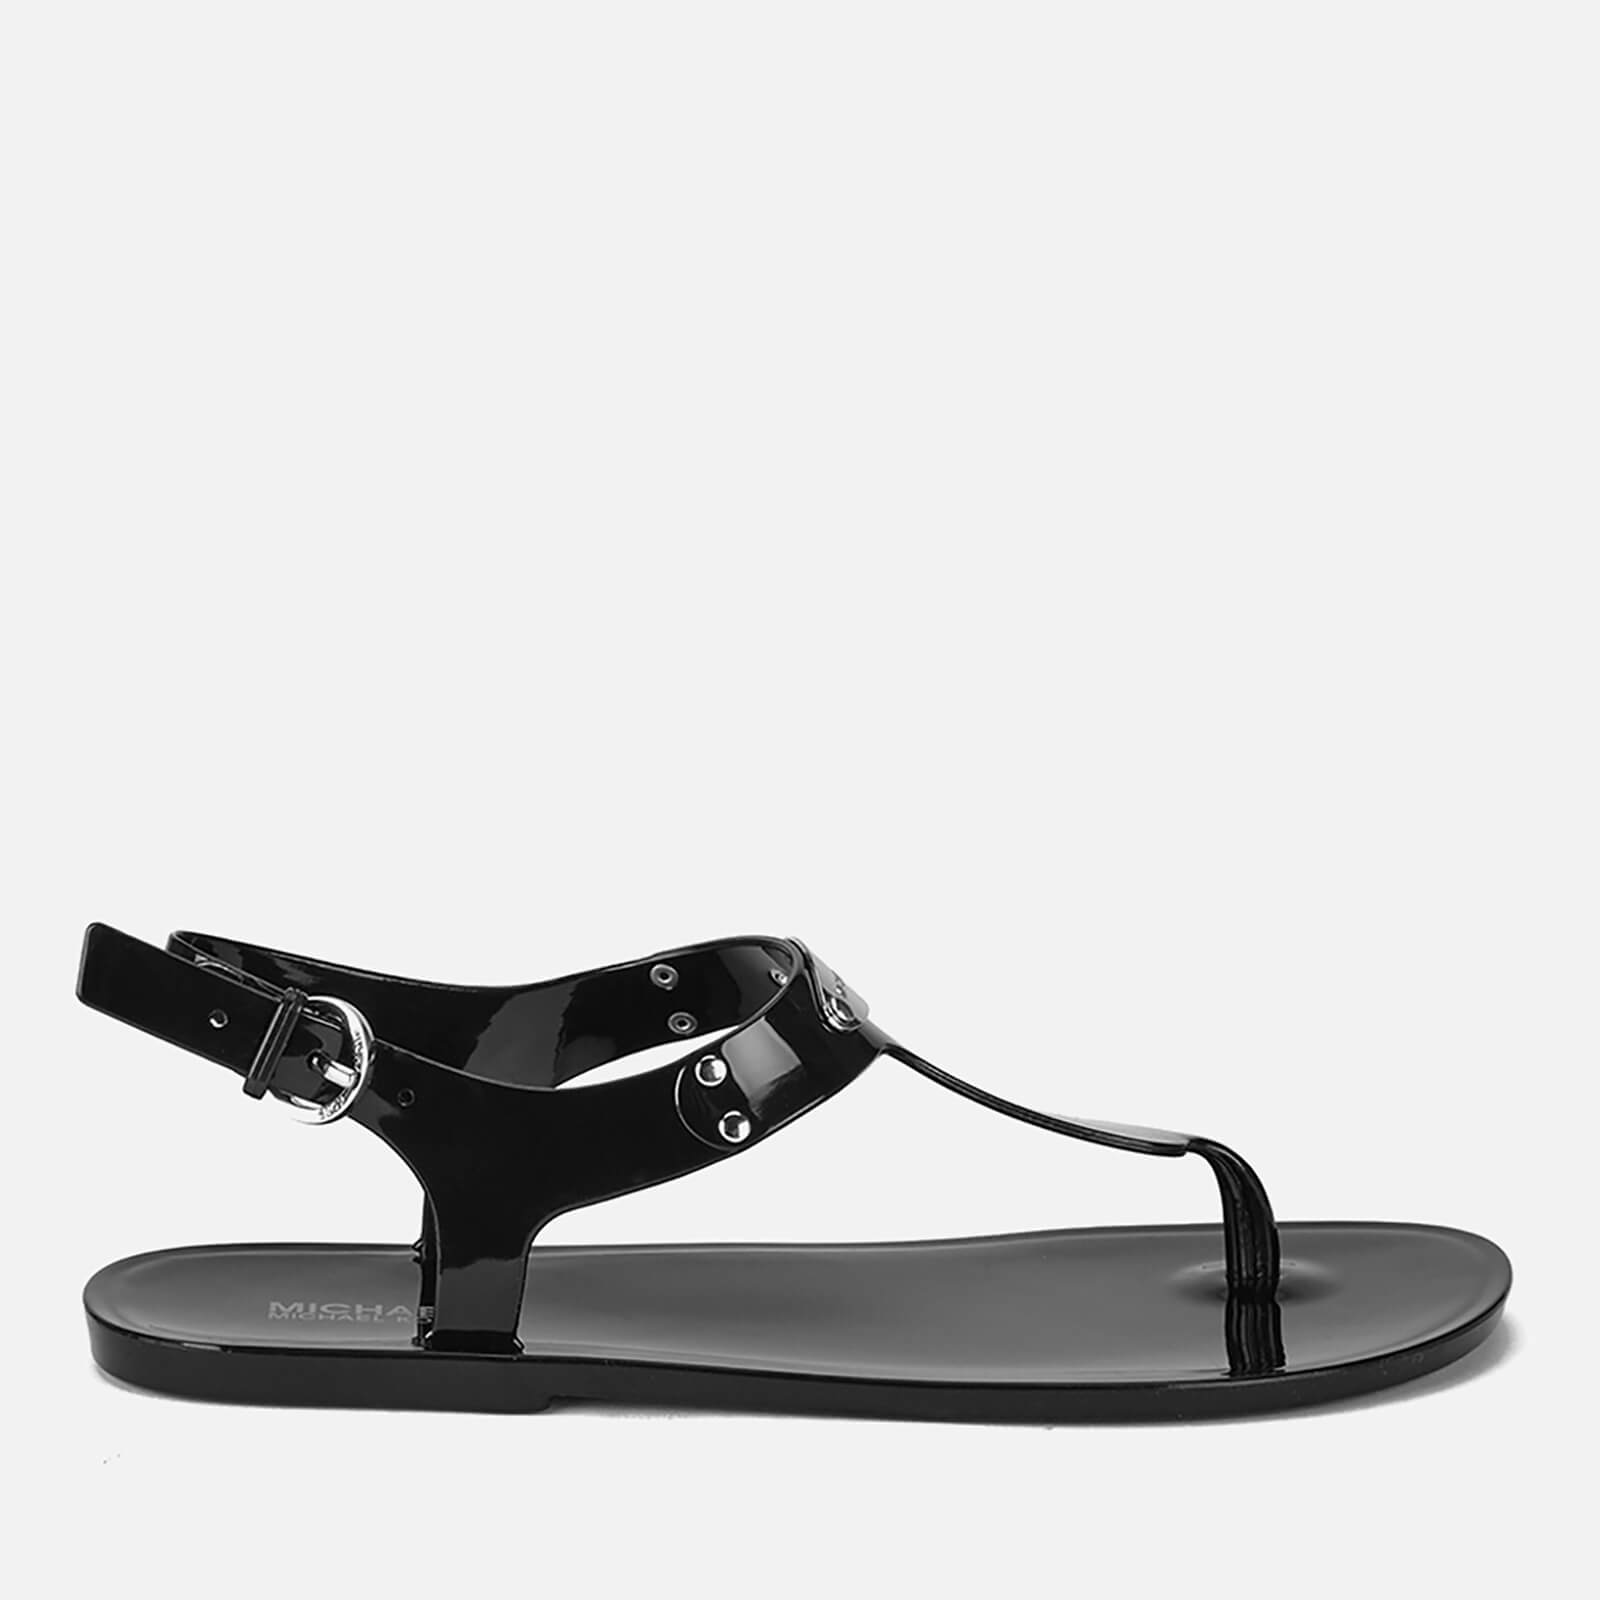 39f636c11b3 MICHAEL MICHAEL KORS Women s MK Plate Jelly Sandals - Black - Free UK  Delivery over £50